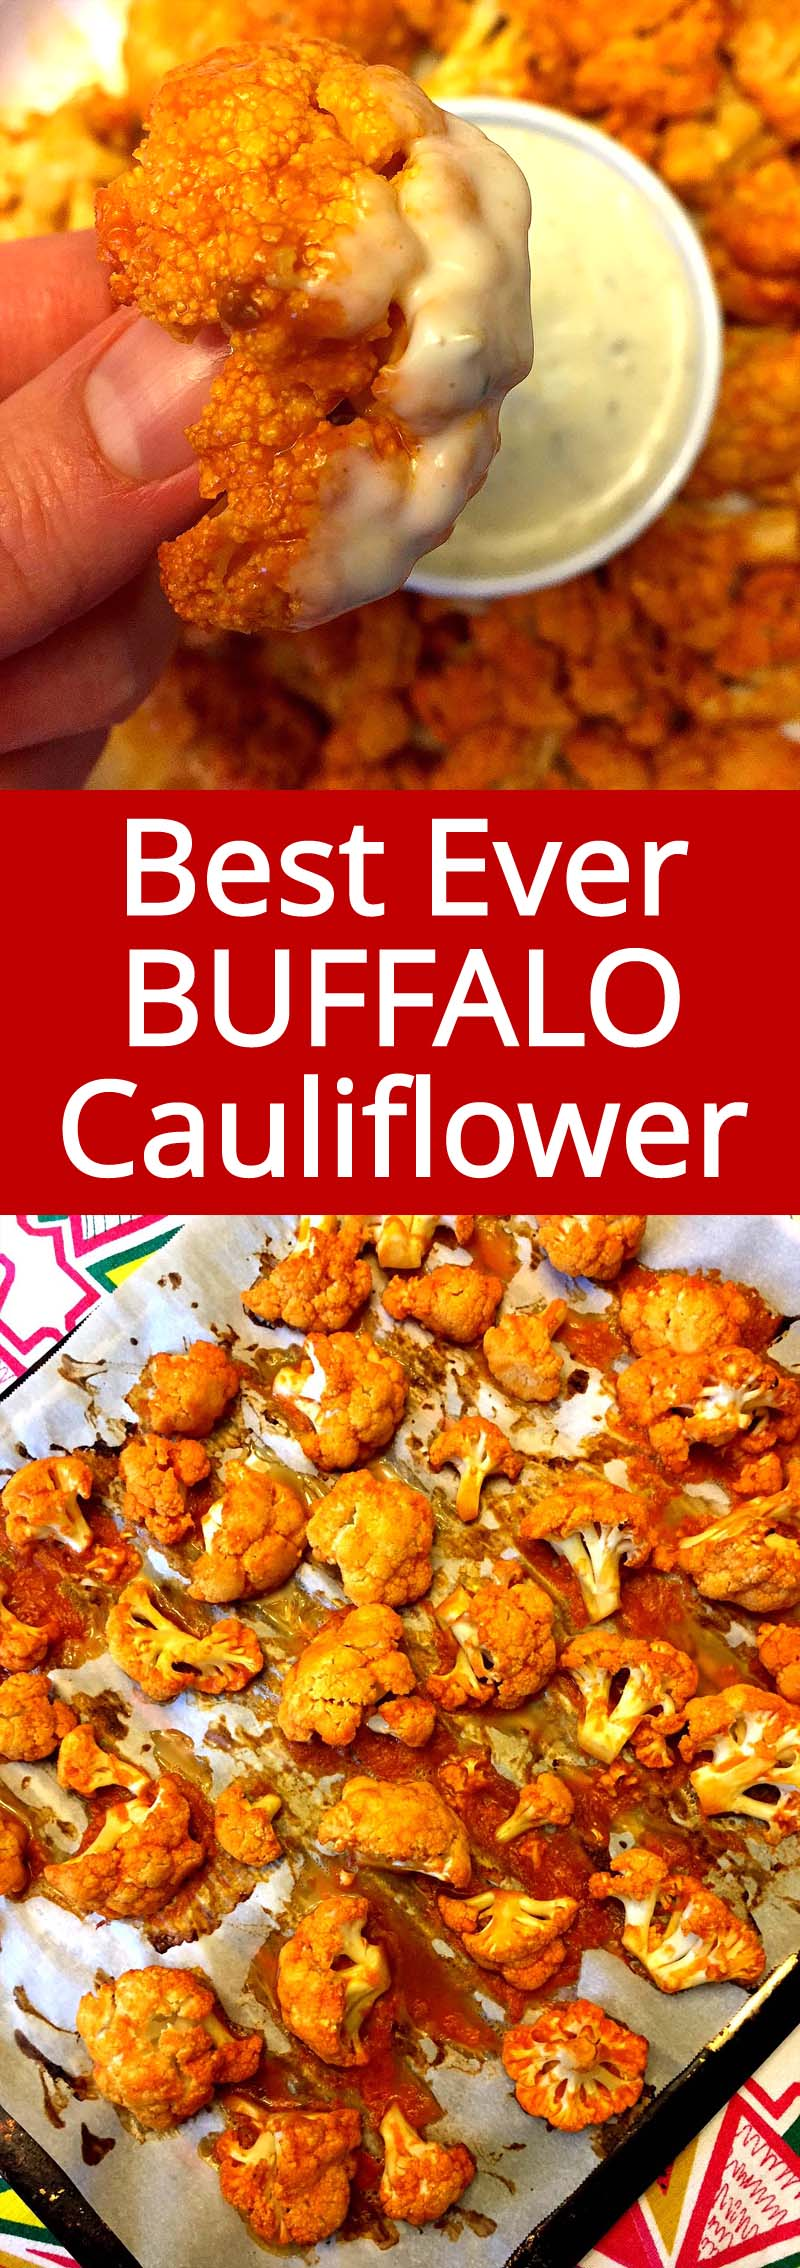 Everyone loves with Buffalo cauliflower!  This Buffalo Cauliflower is baked in the oven and is so healthy! Super addictive and great with Ranch for dipping!